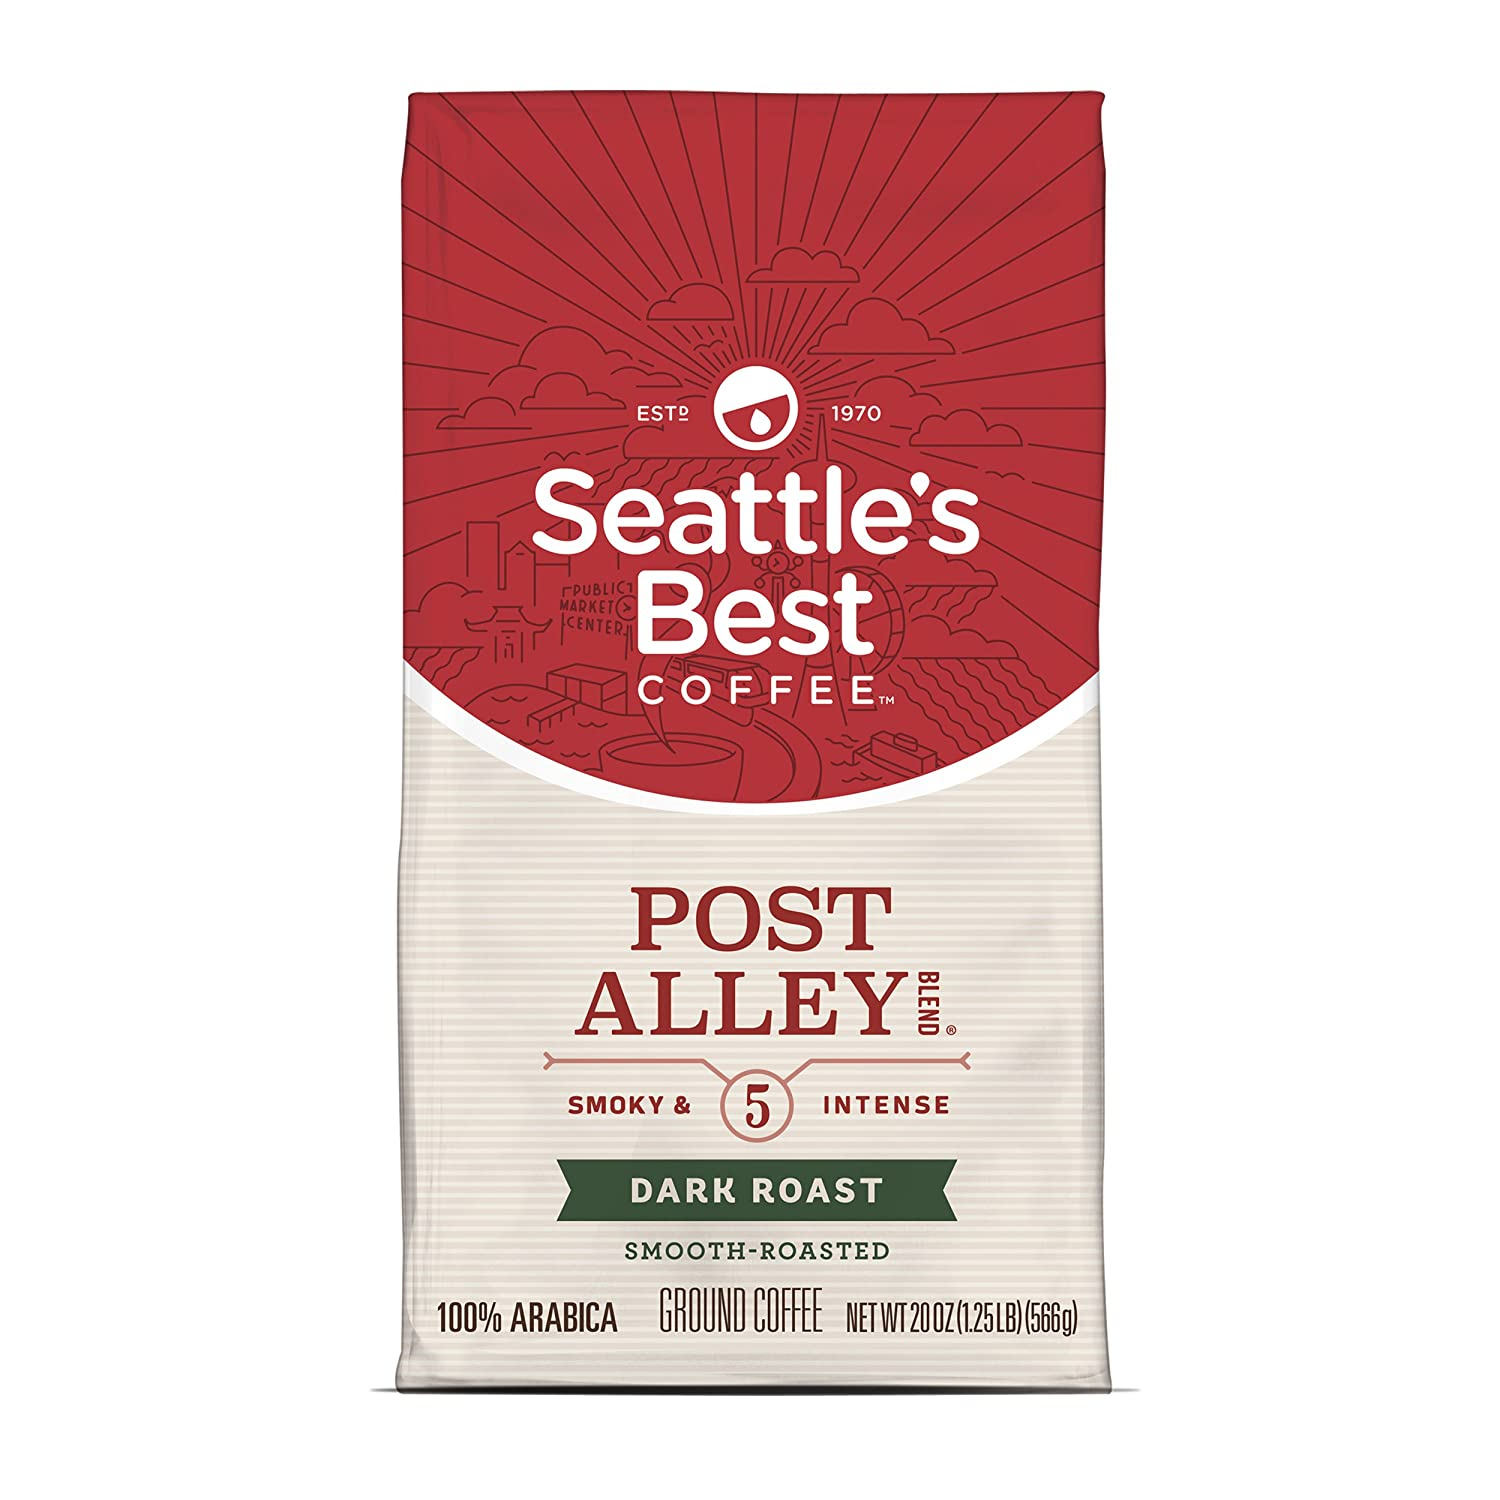 Seattle's Best Coffee Post Alley Blend